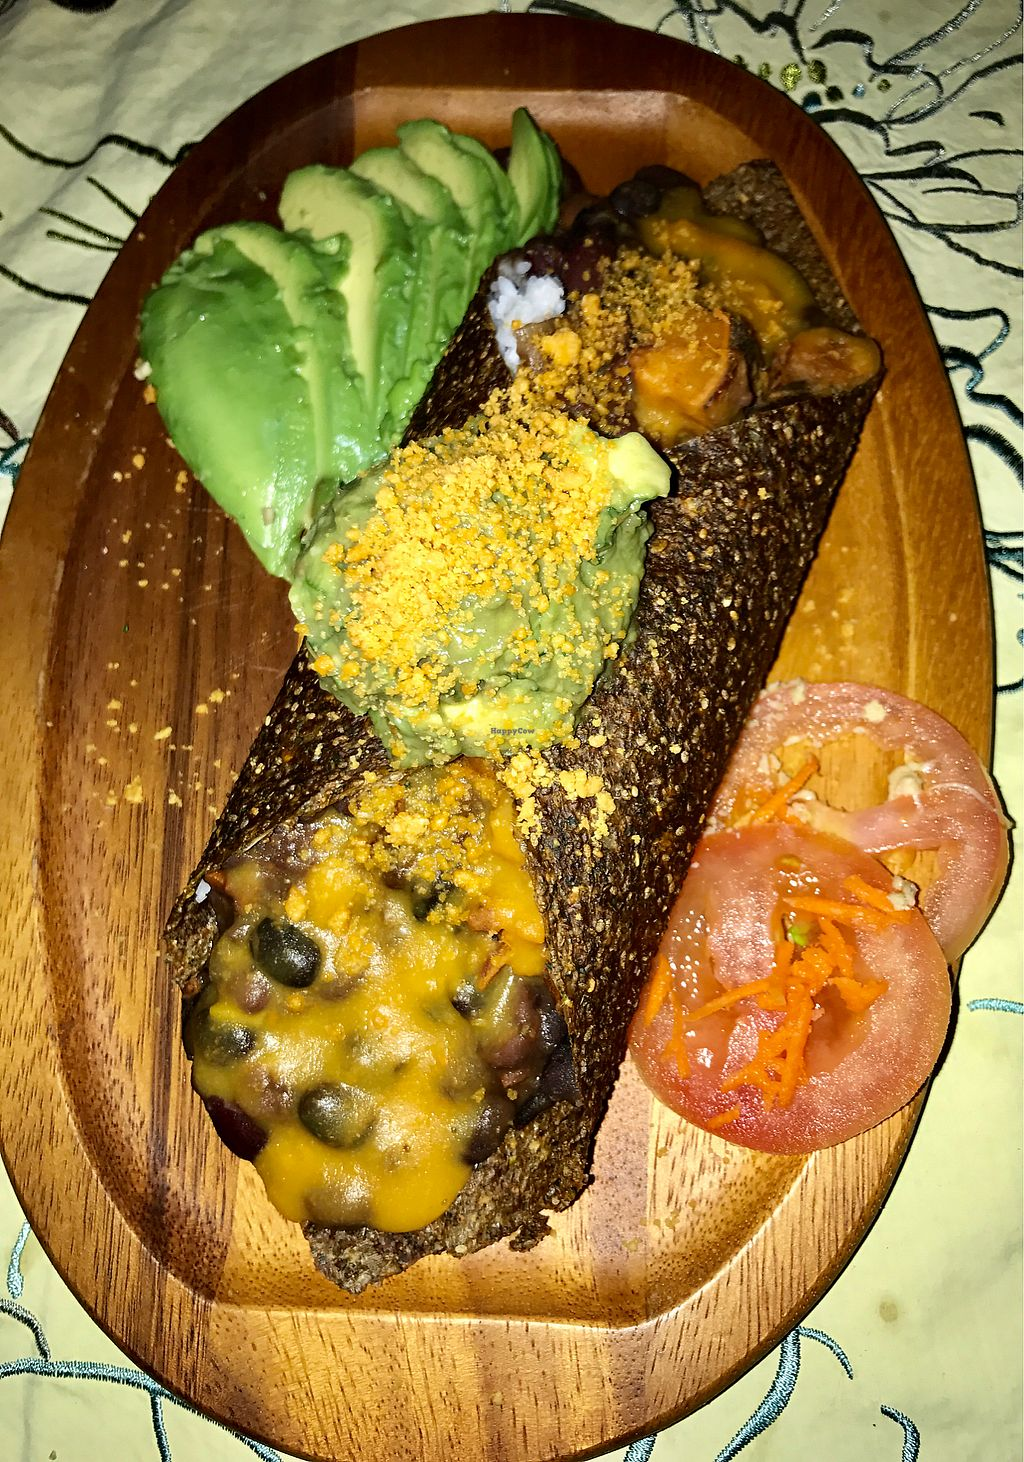 Photo of ChocolaTree Organic Oasis  by _Dharma <br/>Vegan enchiladas with cashew cheese <br/> November 17, 2017  - <a href='/contact/abuse/image/9364/326310'>Report</a>